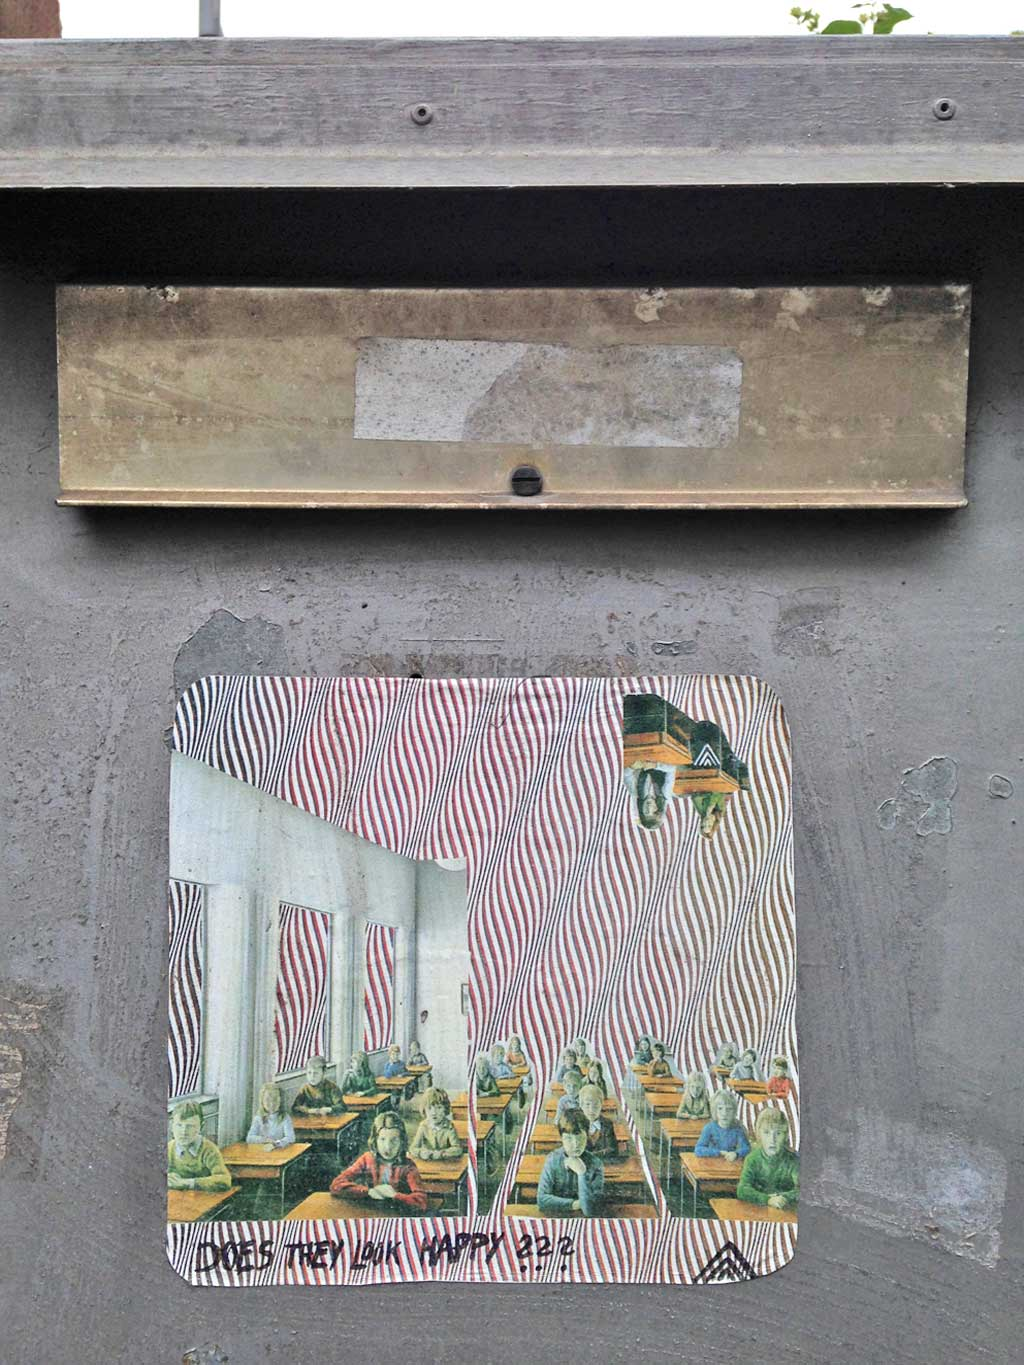 Collage-Streetart in Frankfurt